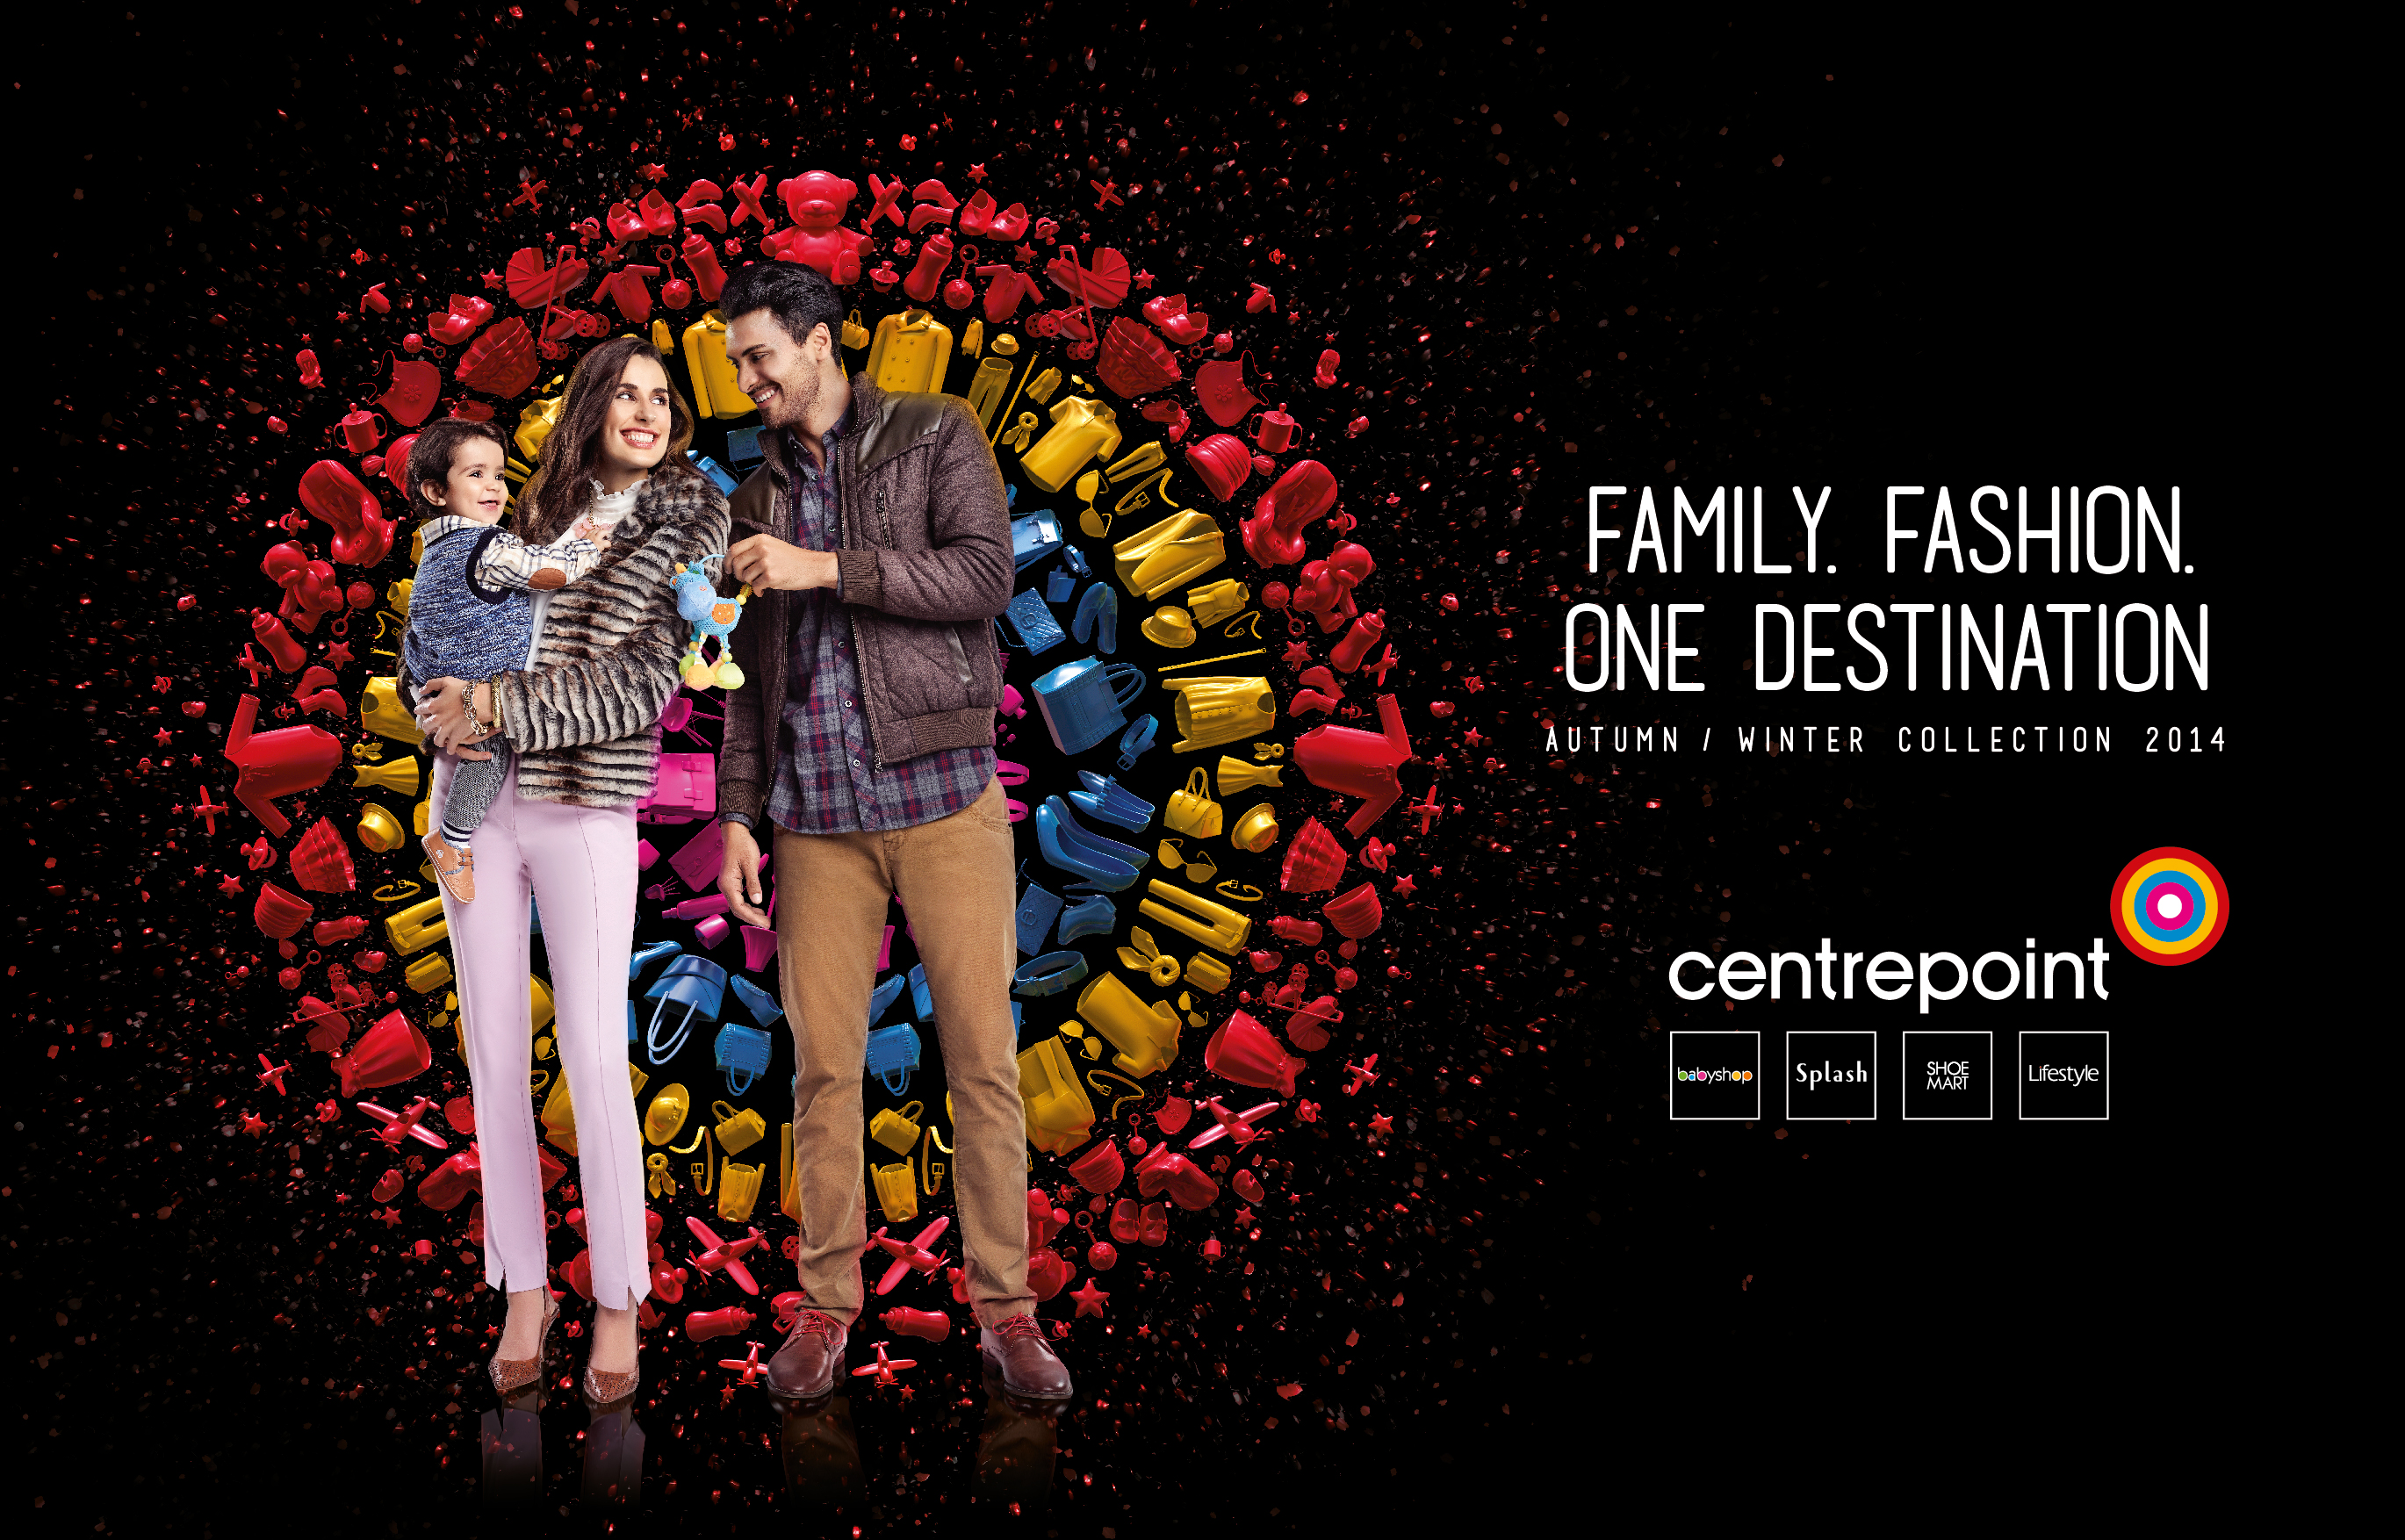 centrepoint-revamps-brand-identity-launches-new-campaign